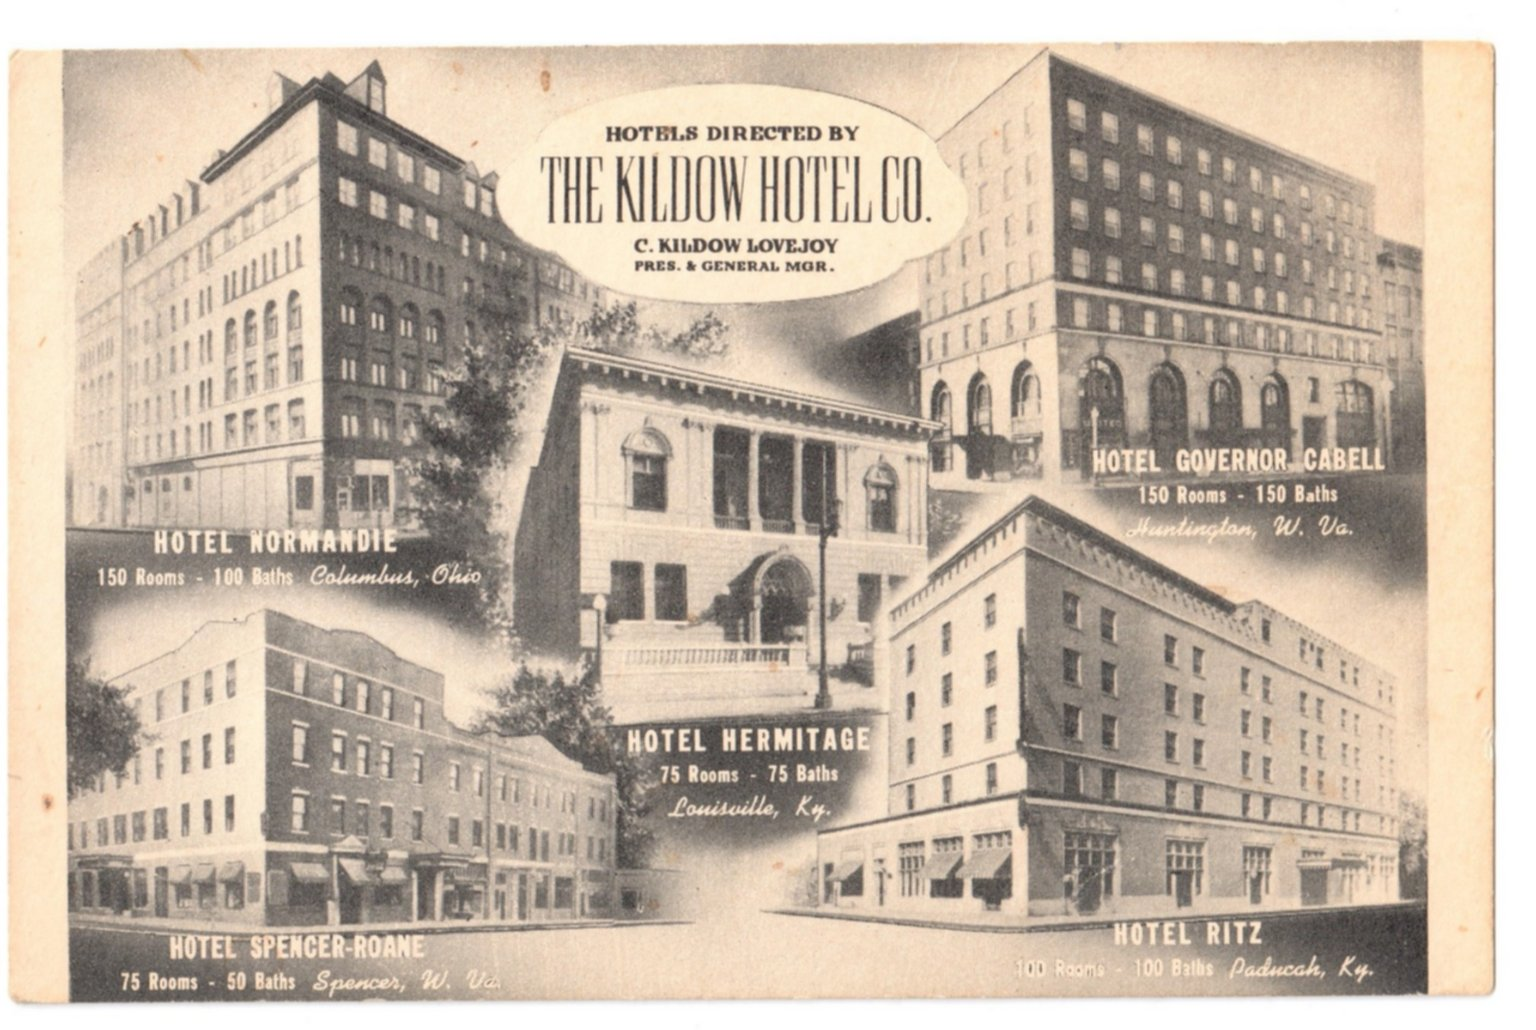 Hotels Directed by the Kildow Hotel Co.